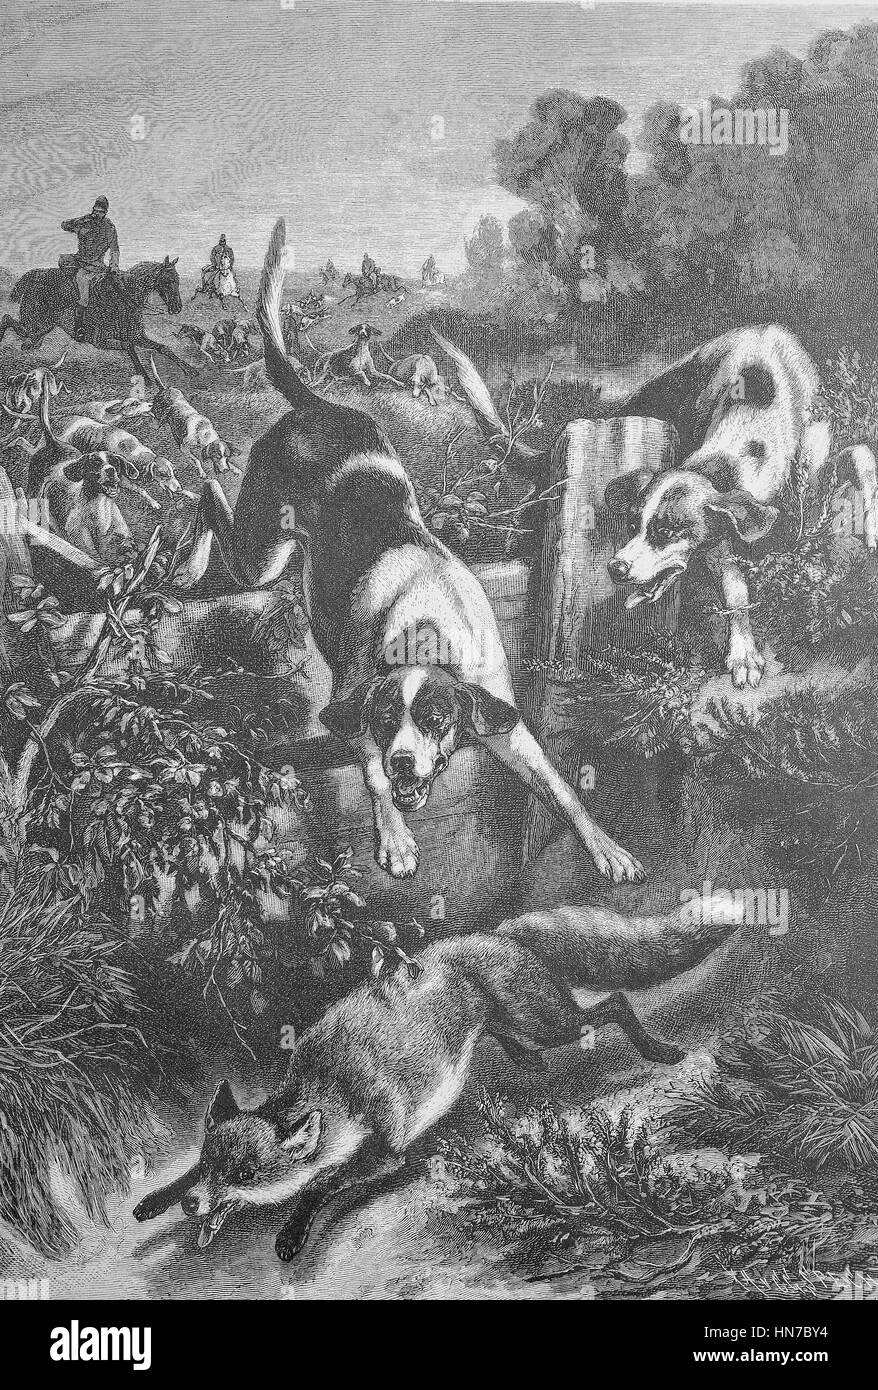 Fox hunting with hunting dogs, Fuchsjagd mit Jagdhunden, woodcut from 1885, digital improved - Stock Image